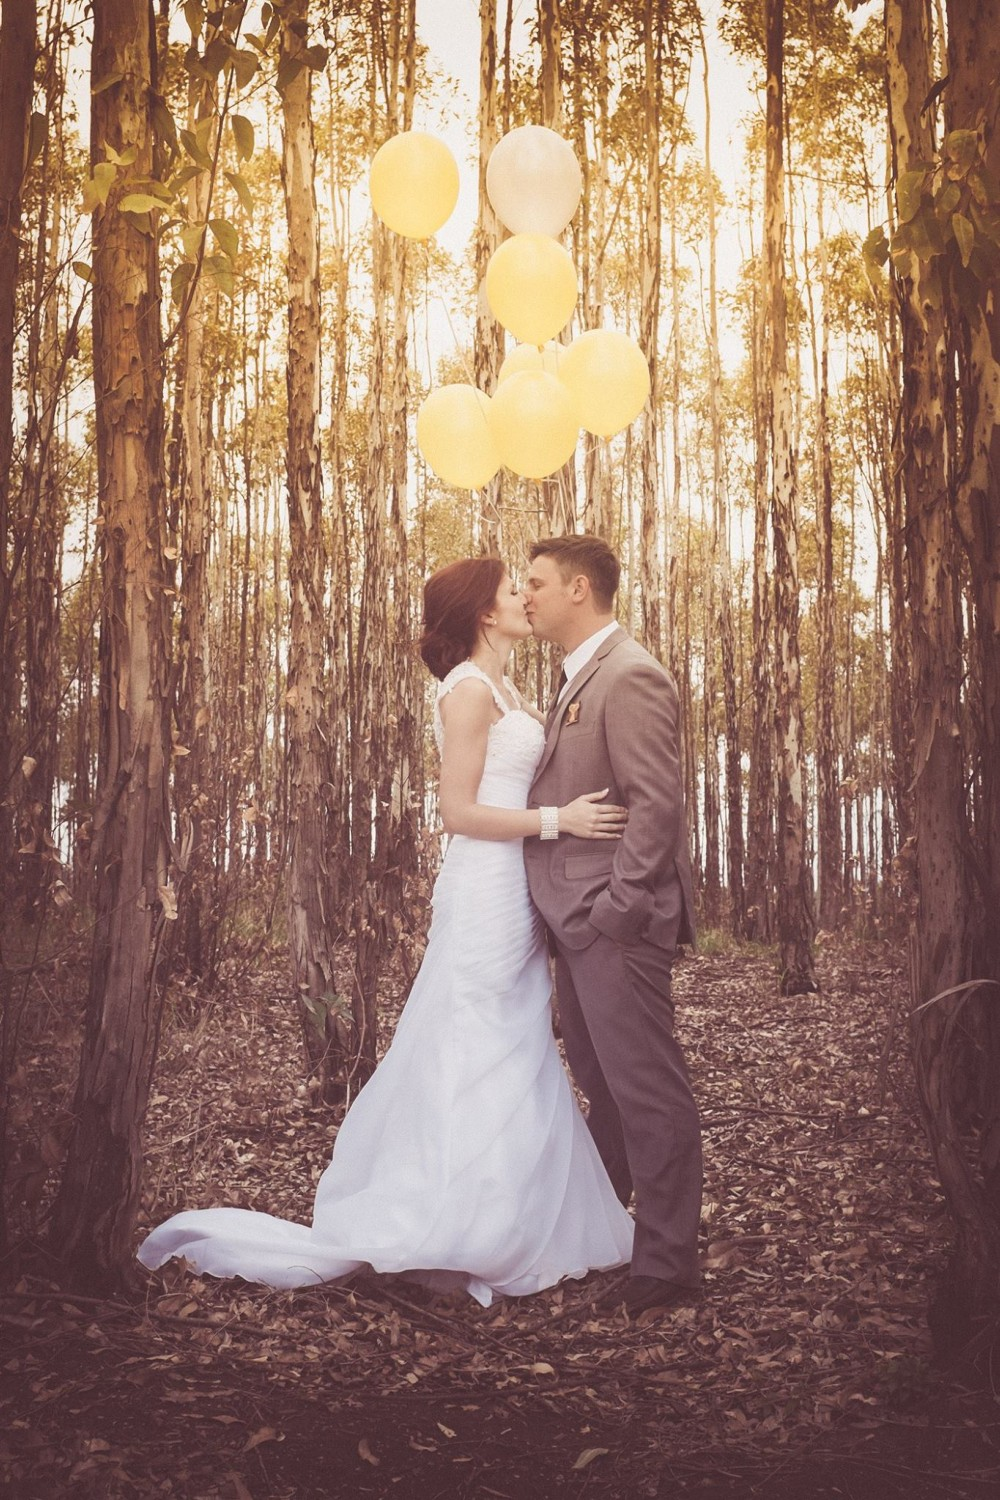 Forever yours second hand wedding dresses stillwhite for Forever yours wedding dress